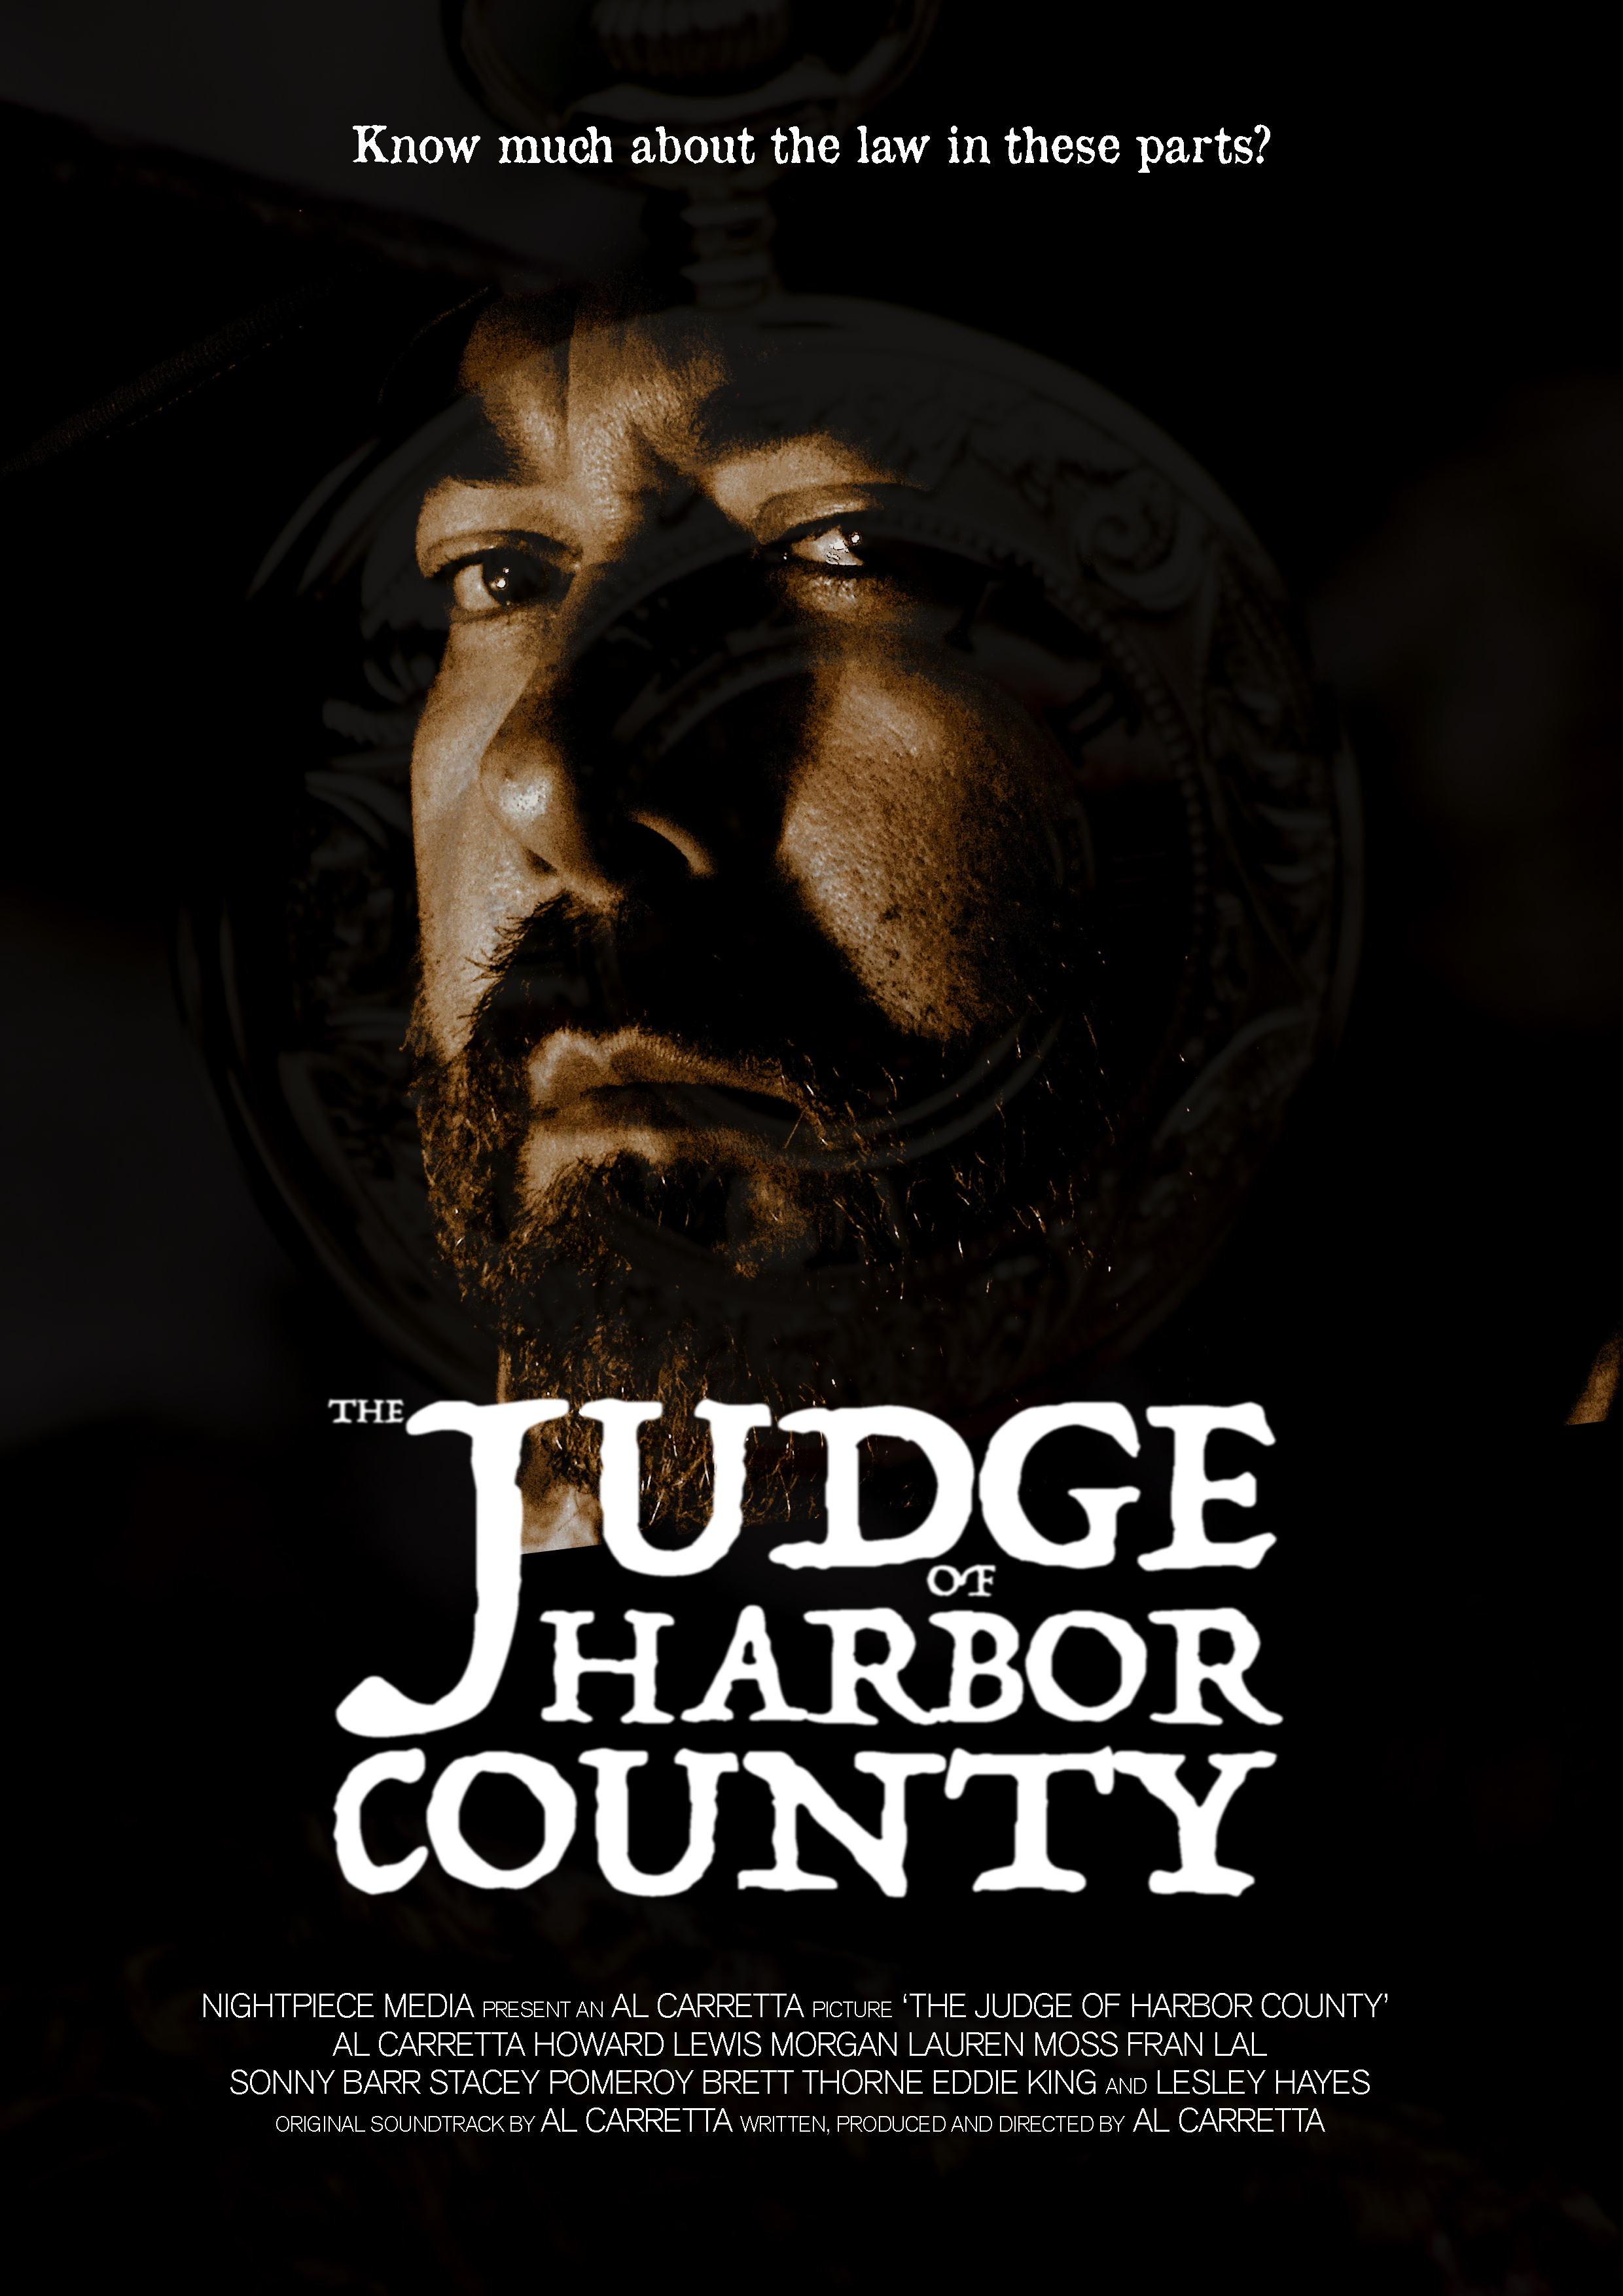 The Judge Of Harbor County (2021) Hindi (Voice Over) Dubbed+ English [Dual Audio] WebRip 720p [1XBET]